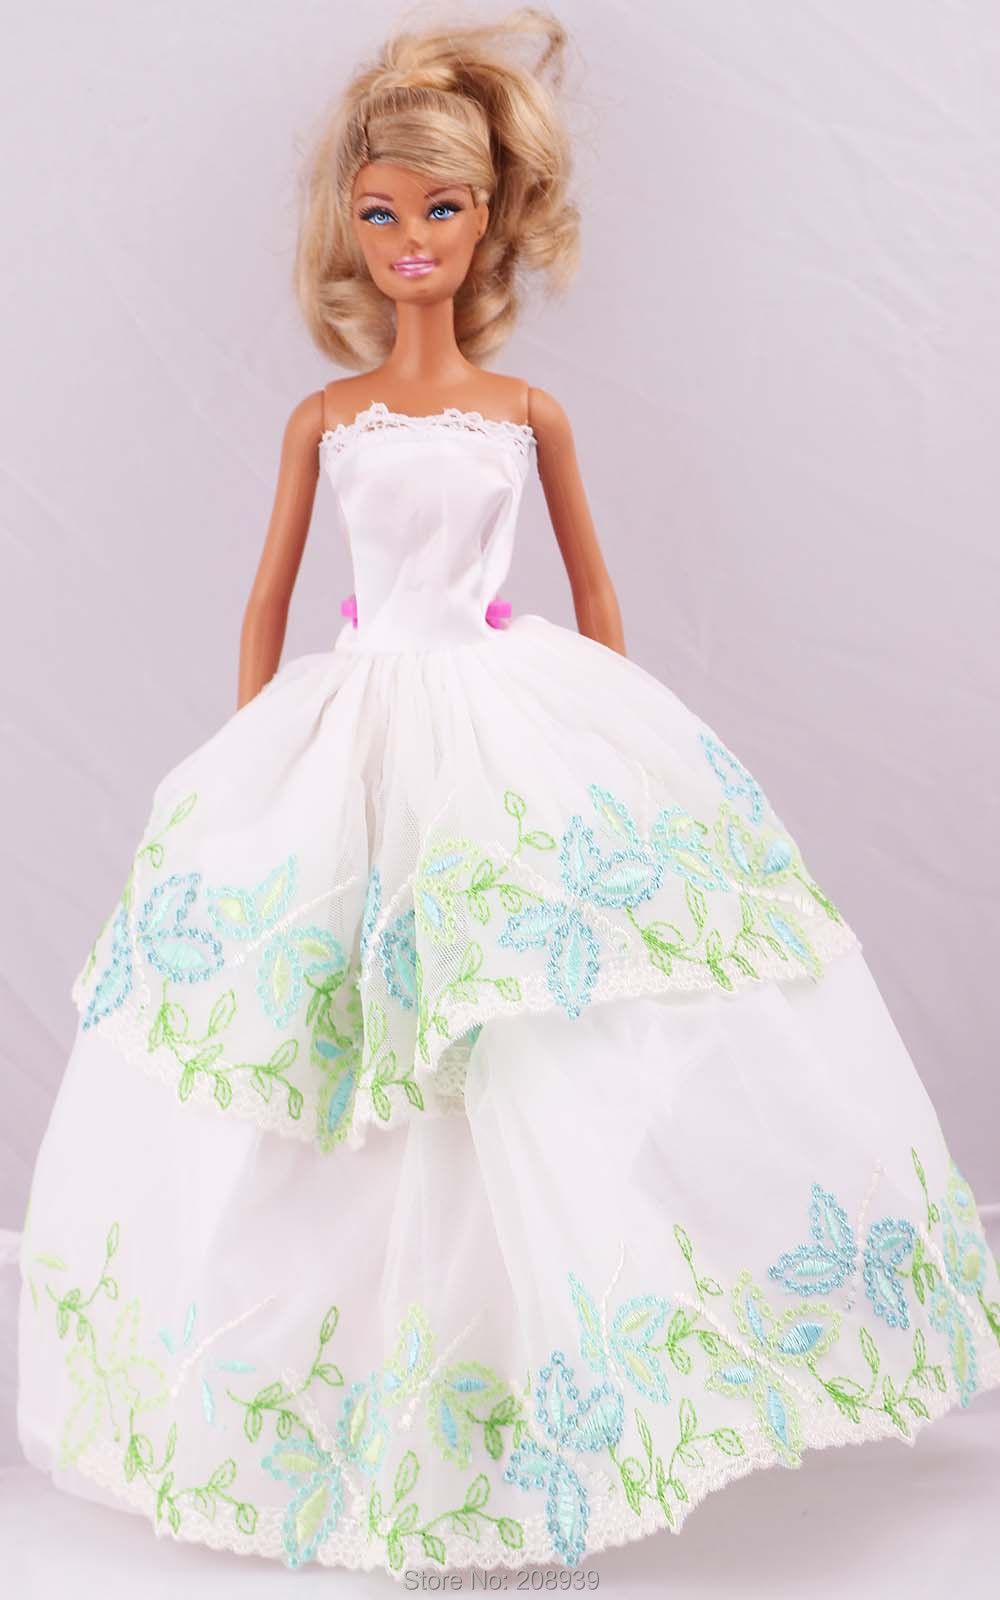 "Fashion Handmade White Dress/Party Dress Clothes Gown For 11"" Barbie Doll D993(China (Mainland))"